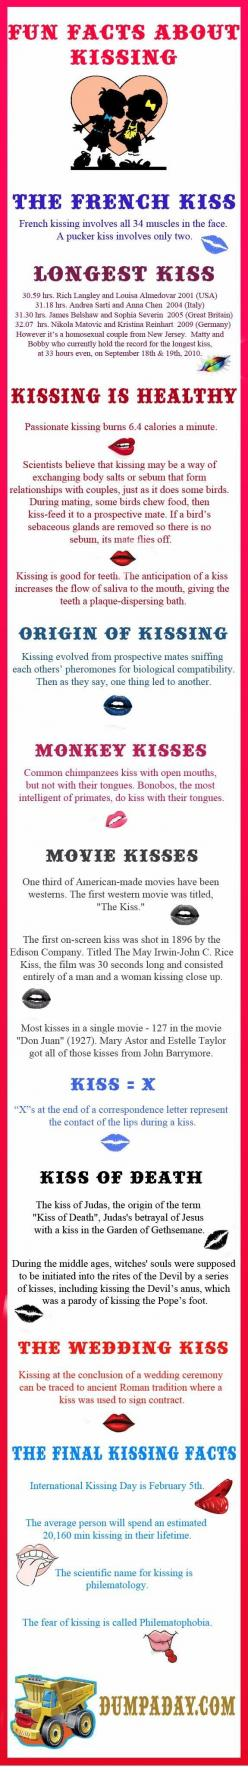 Kissing facts Nibblers will help you pucker those sensual lips. Shop online 24/7 www.LoveBug.YourPassionConsultant.com use code: PINME20: 3Kissingg Factss, Kissing Facts, Funny, Kiss Facts, Facts Nibblers, Fun Facts, Passion, Random Facts